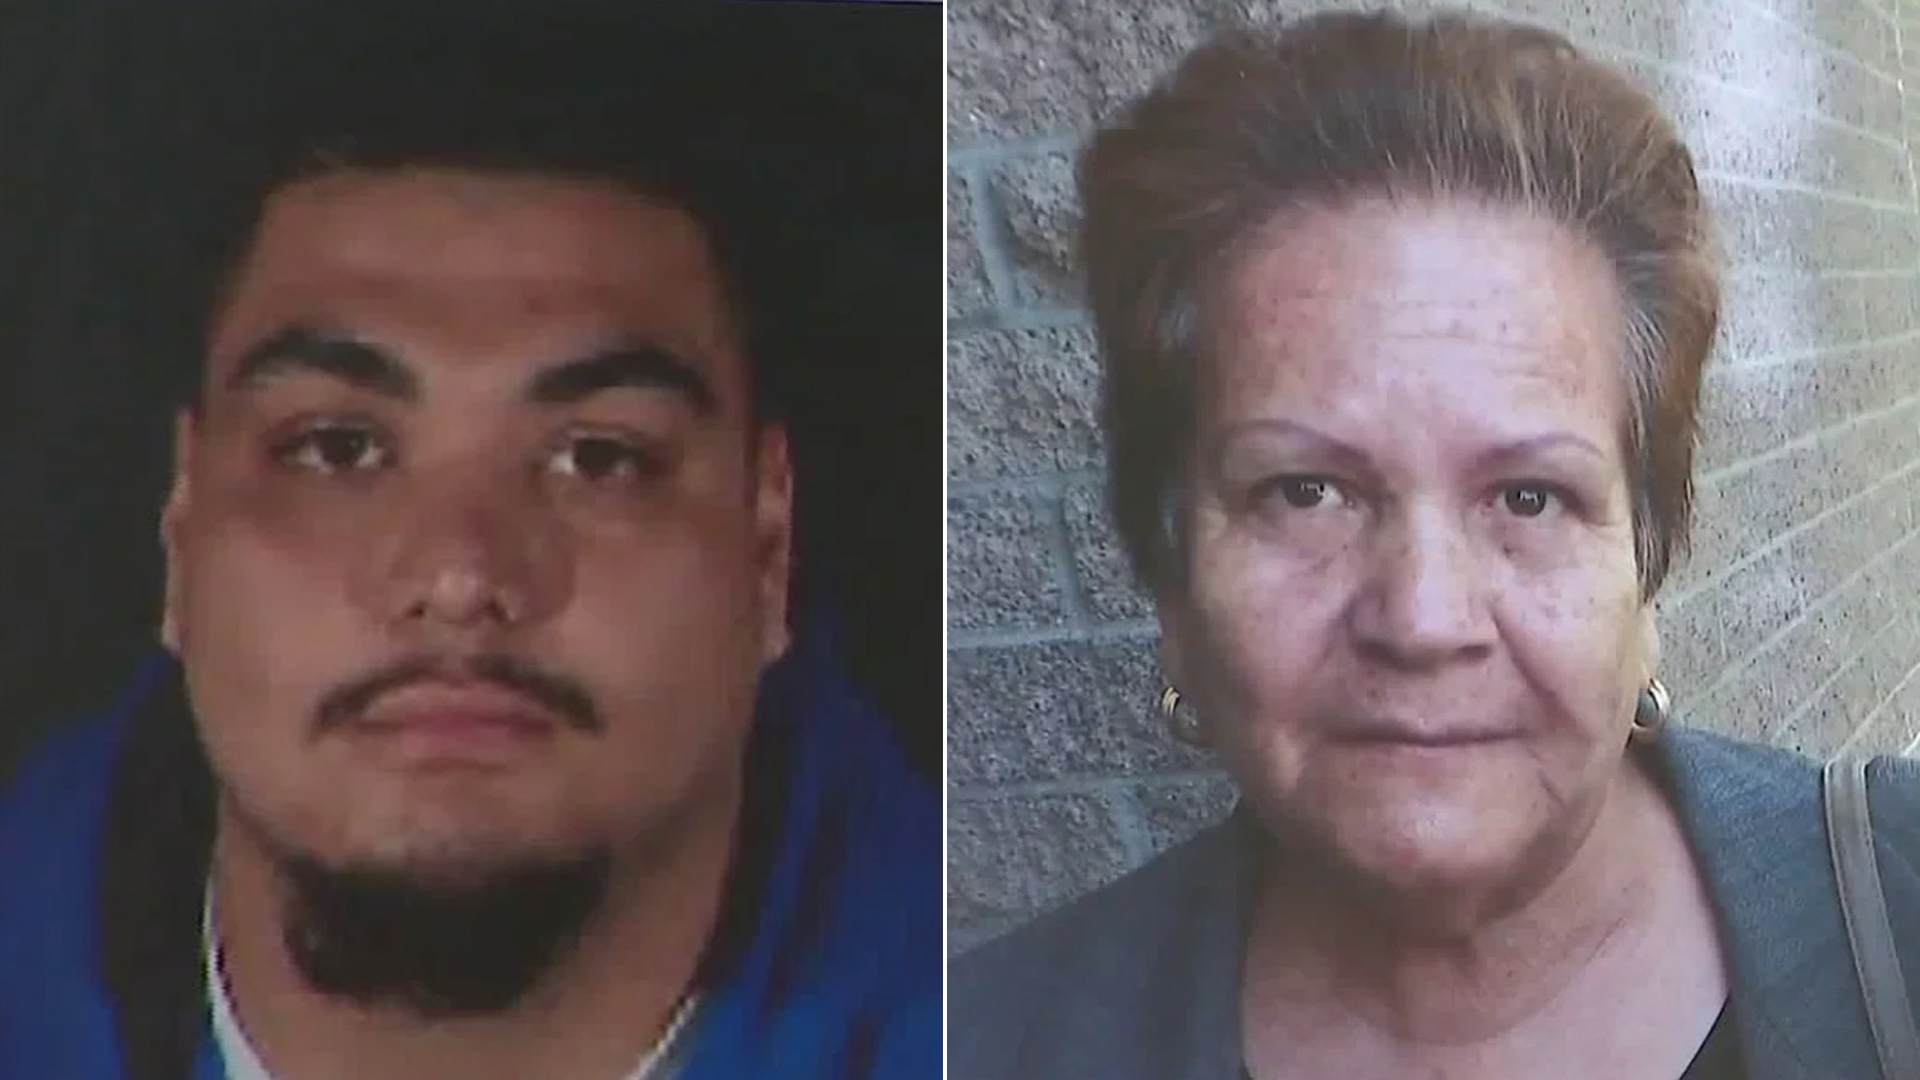 On the left, Brandon Mazariego is shown in a photo displayed at an LAPD news conference on Nov. 20, 2018. On the right, Maria Reynoso's photo is held up by her family at a news conference in South L.A. on Nov. 19. (Credit: KTLA)